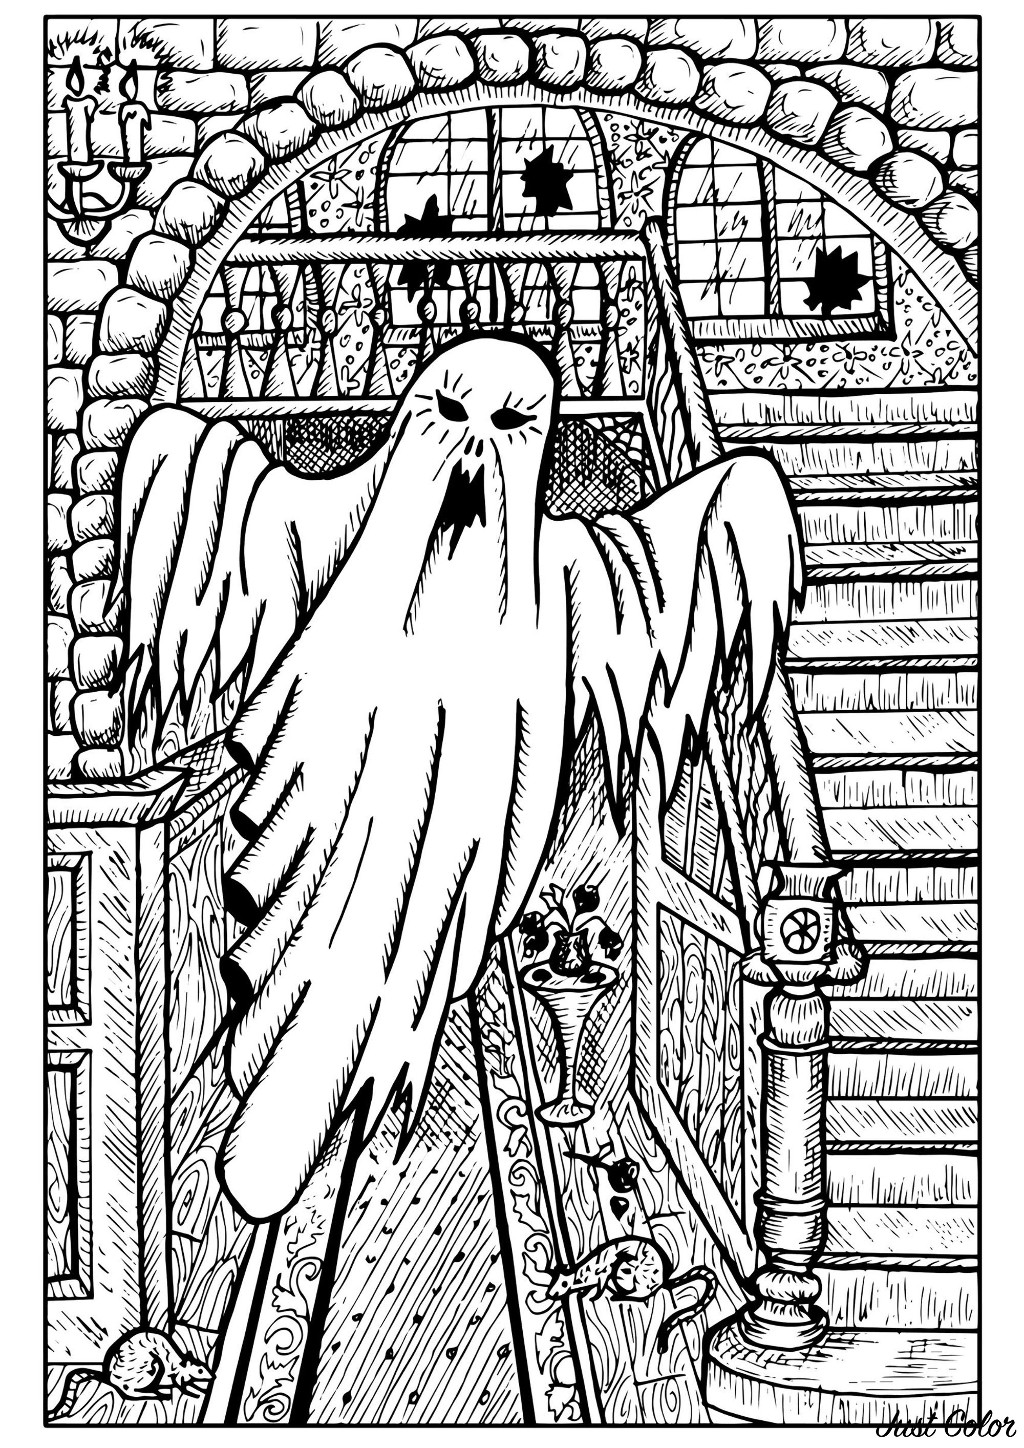 Color this white ghost who is haunting an old mansion